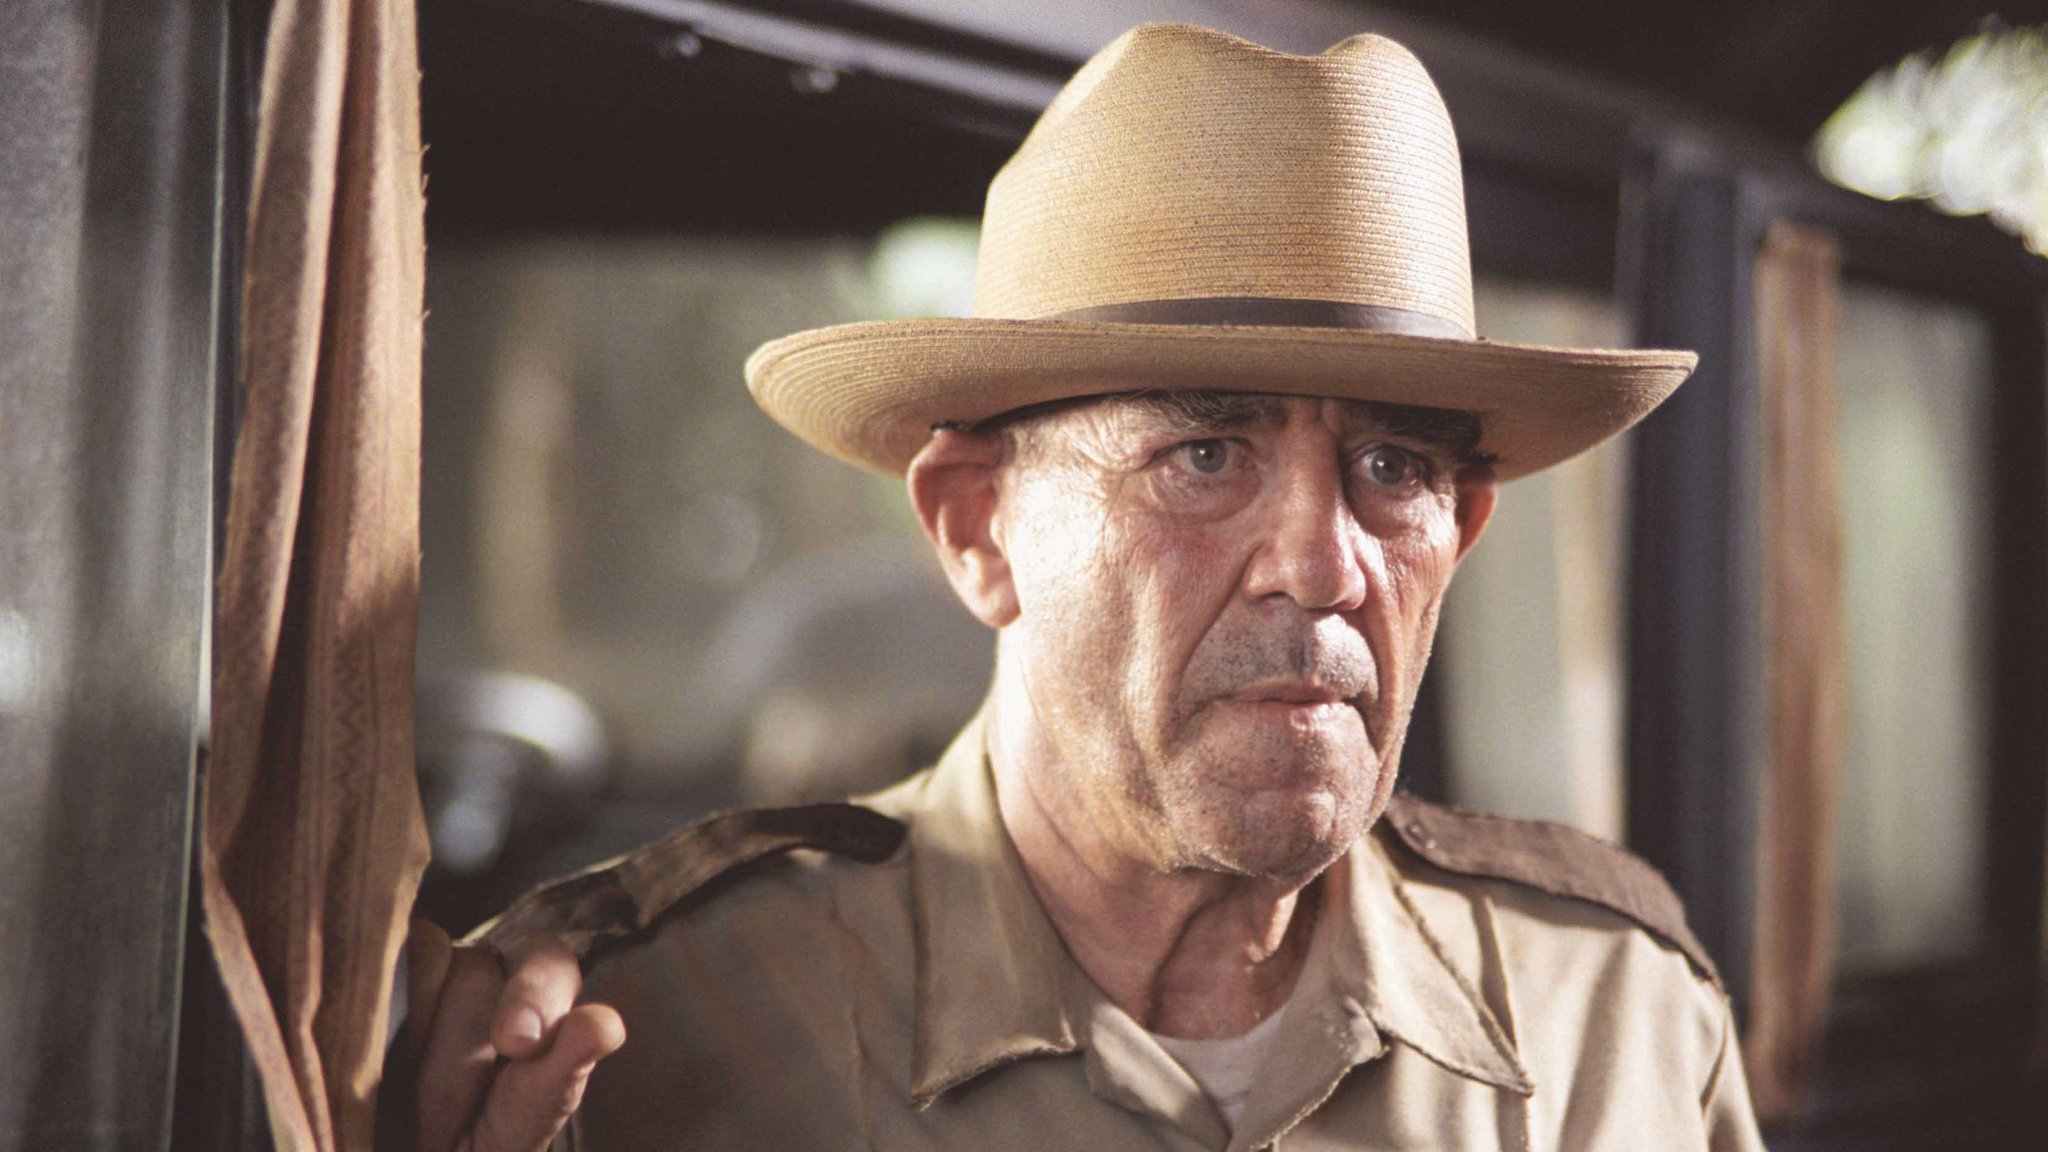 R. Lee Ermey, 'Full Metal Jacket' Golden Globe nominee, dies at 74 https://t.co/A2tnCuqKvw https://t.co/48egLrYoVt